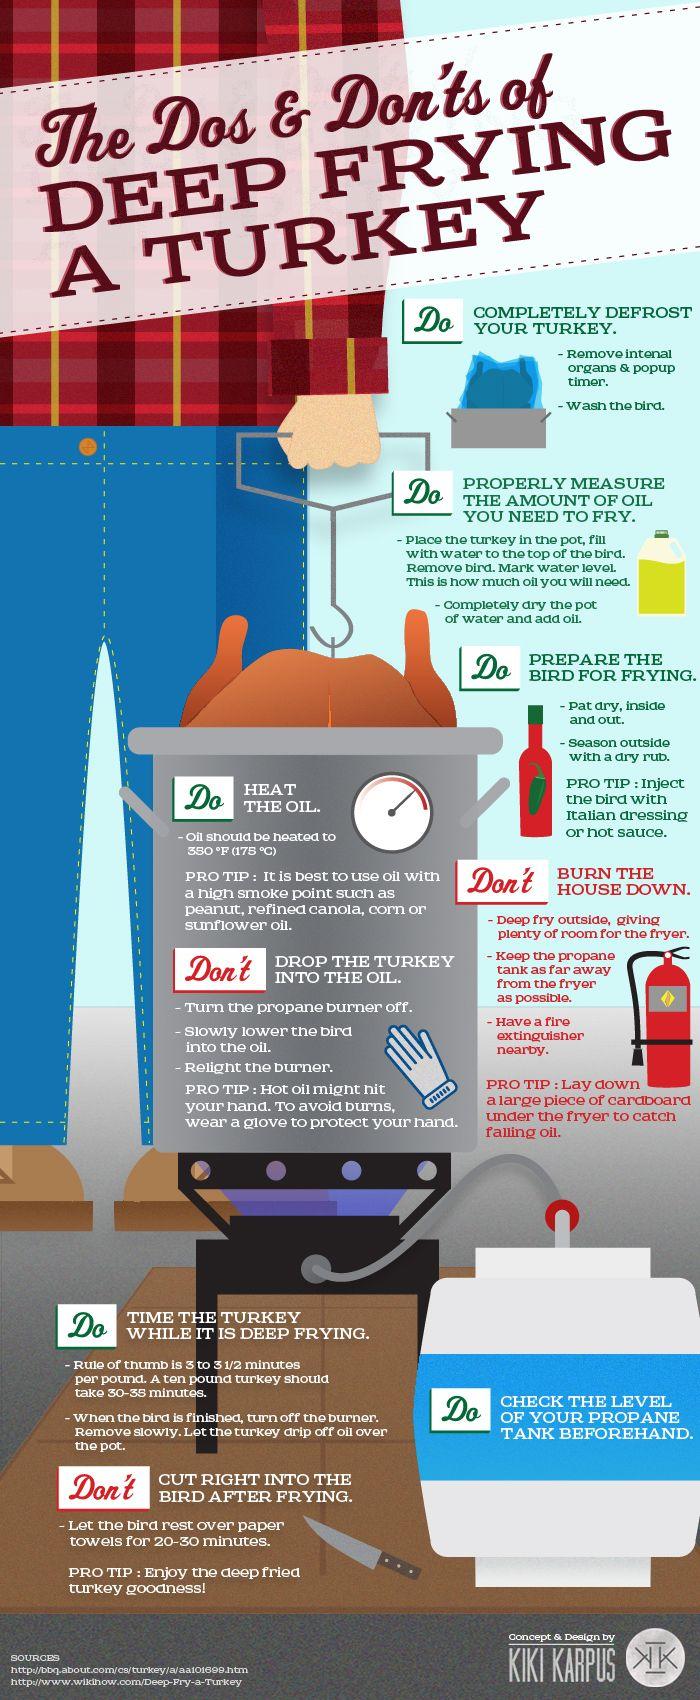 This is a How To of what to do, and what not to do when deep frying a turkey. Just a fun infographic for Thanksgiving.